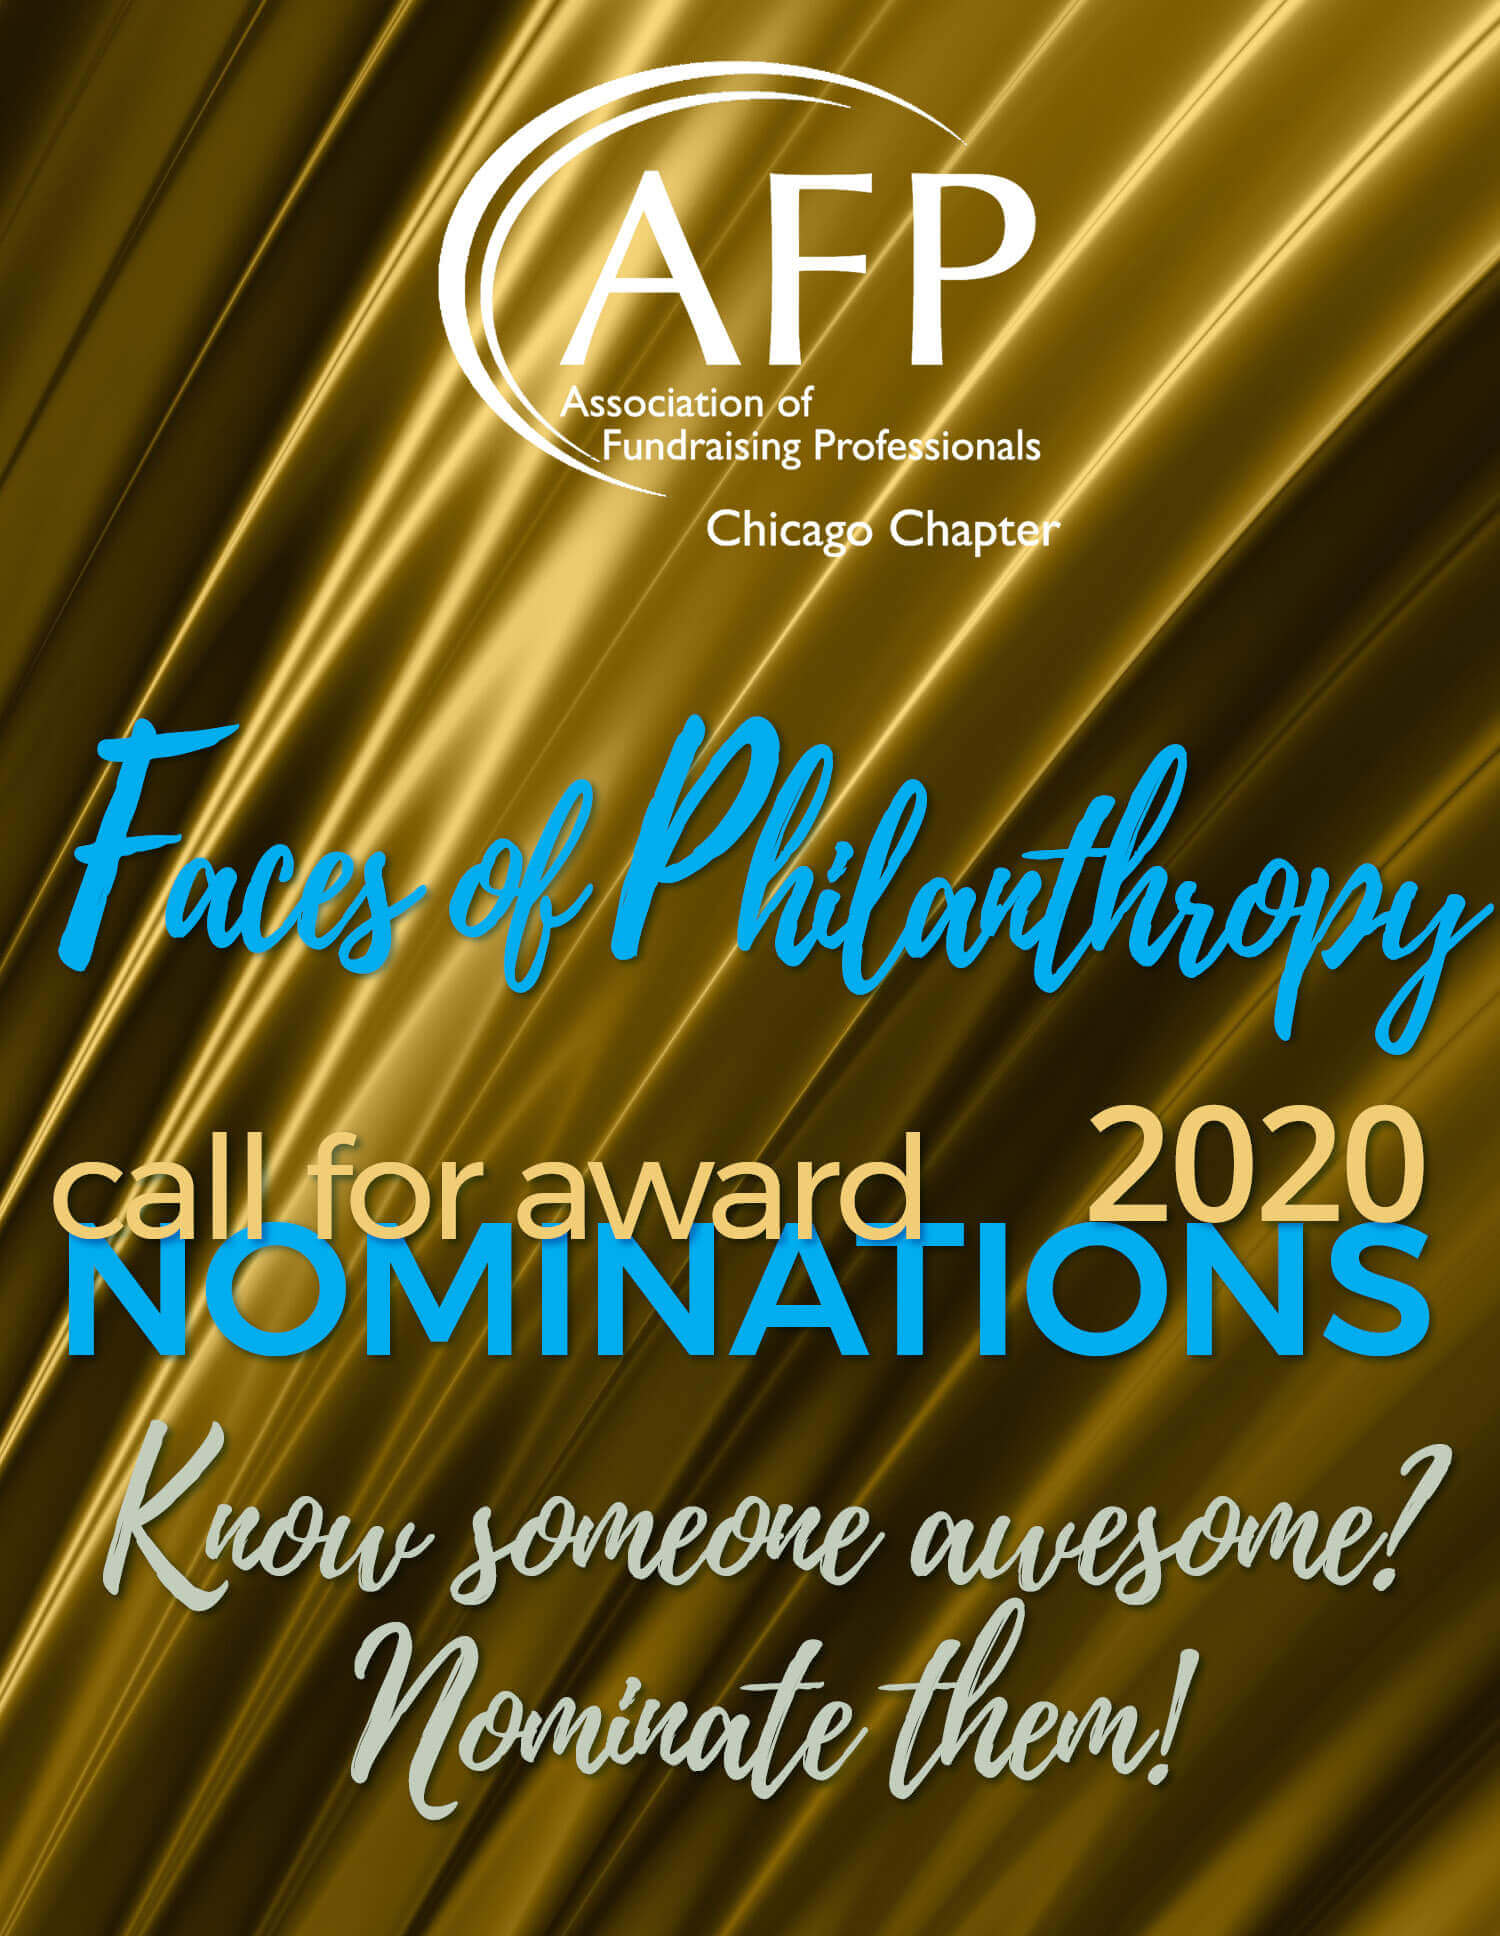 Chicago Chapter of the Association of Fundraising Professionals